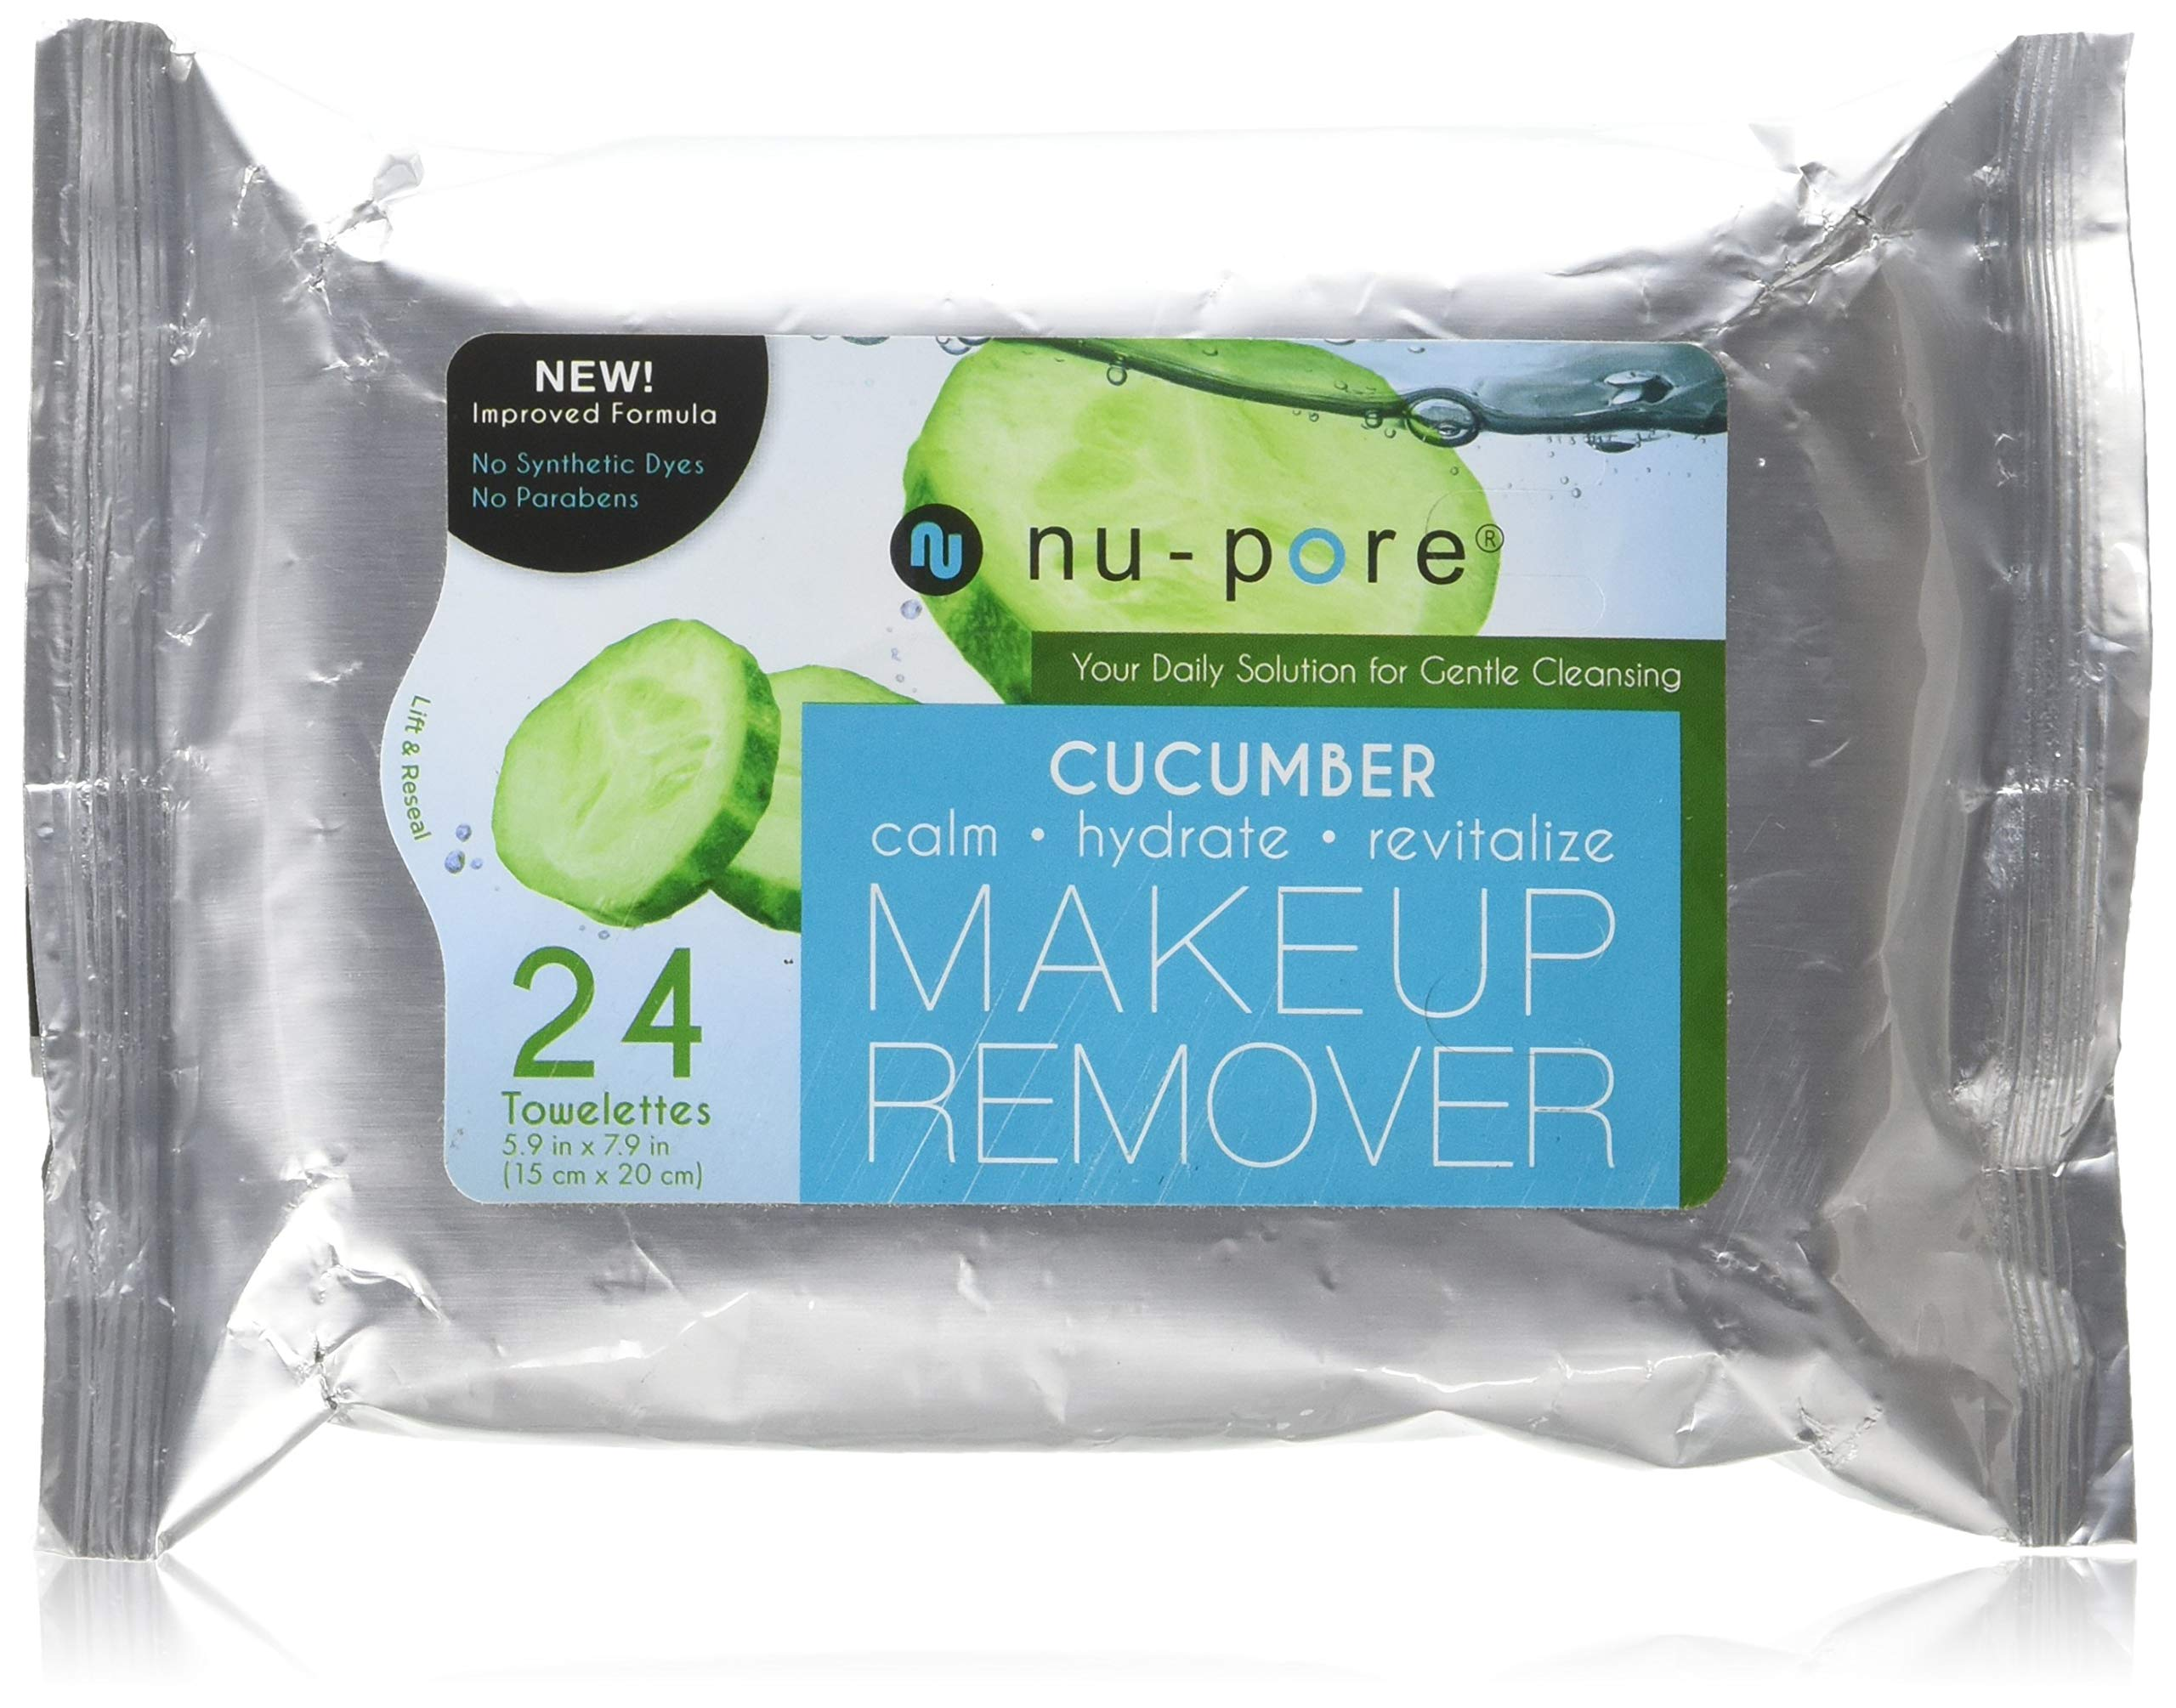 Nu-Pore Makeup Remover With Cucumber, Bulk Case of 24 by nu-pore